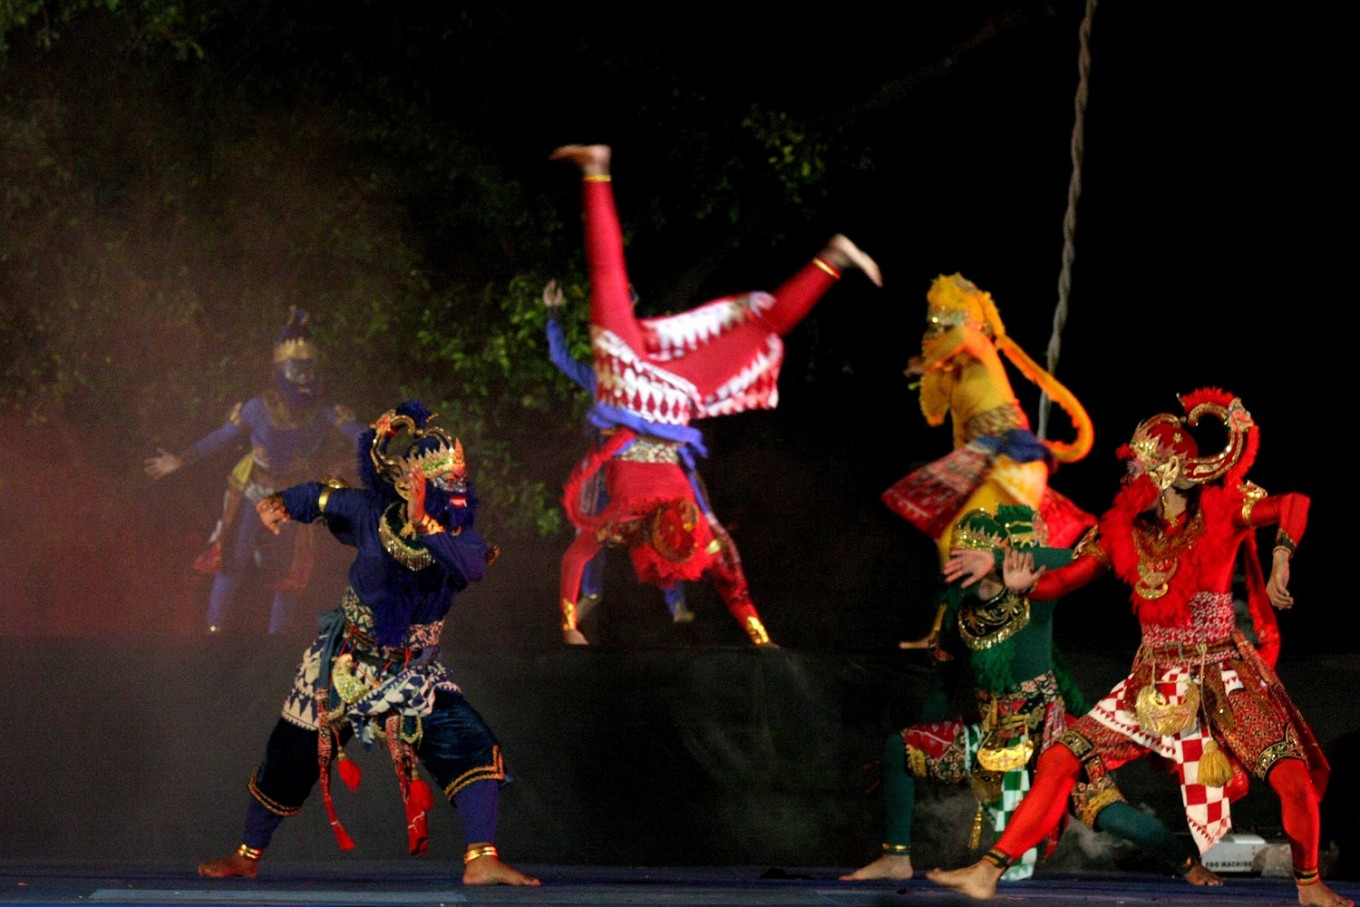 The monkey troops fight during the Ramayana Opera in Fort Vastenburg, Surakarta, Central Java.